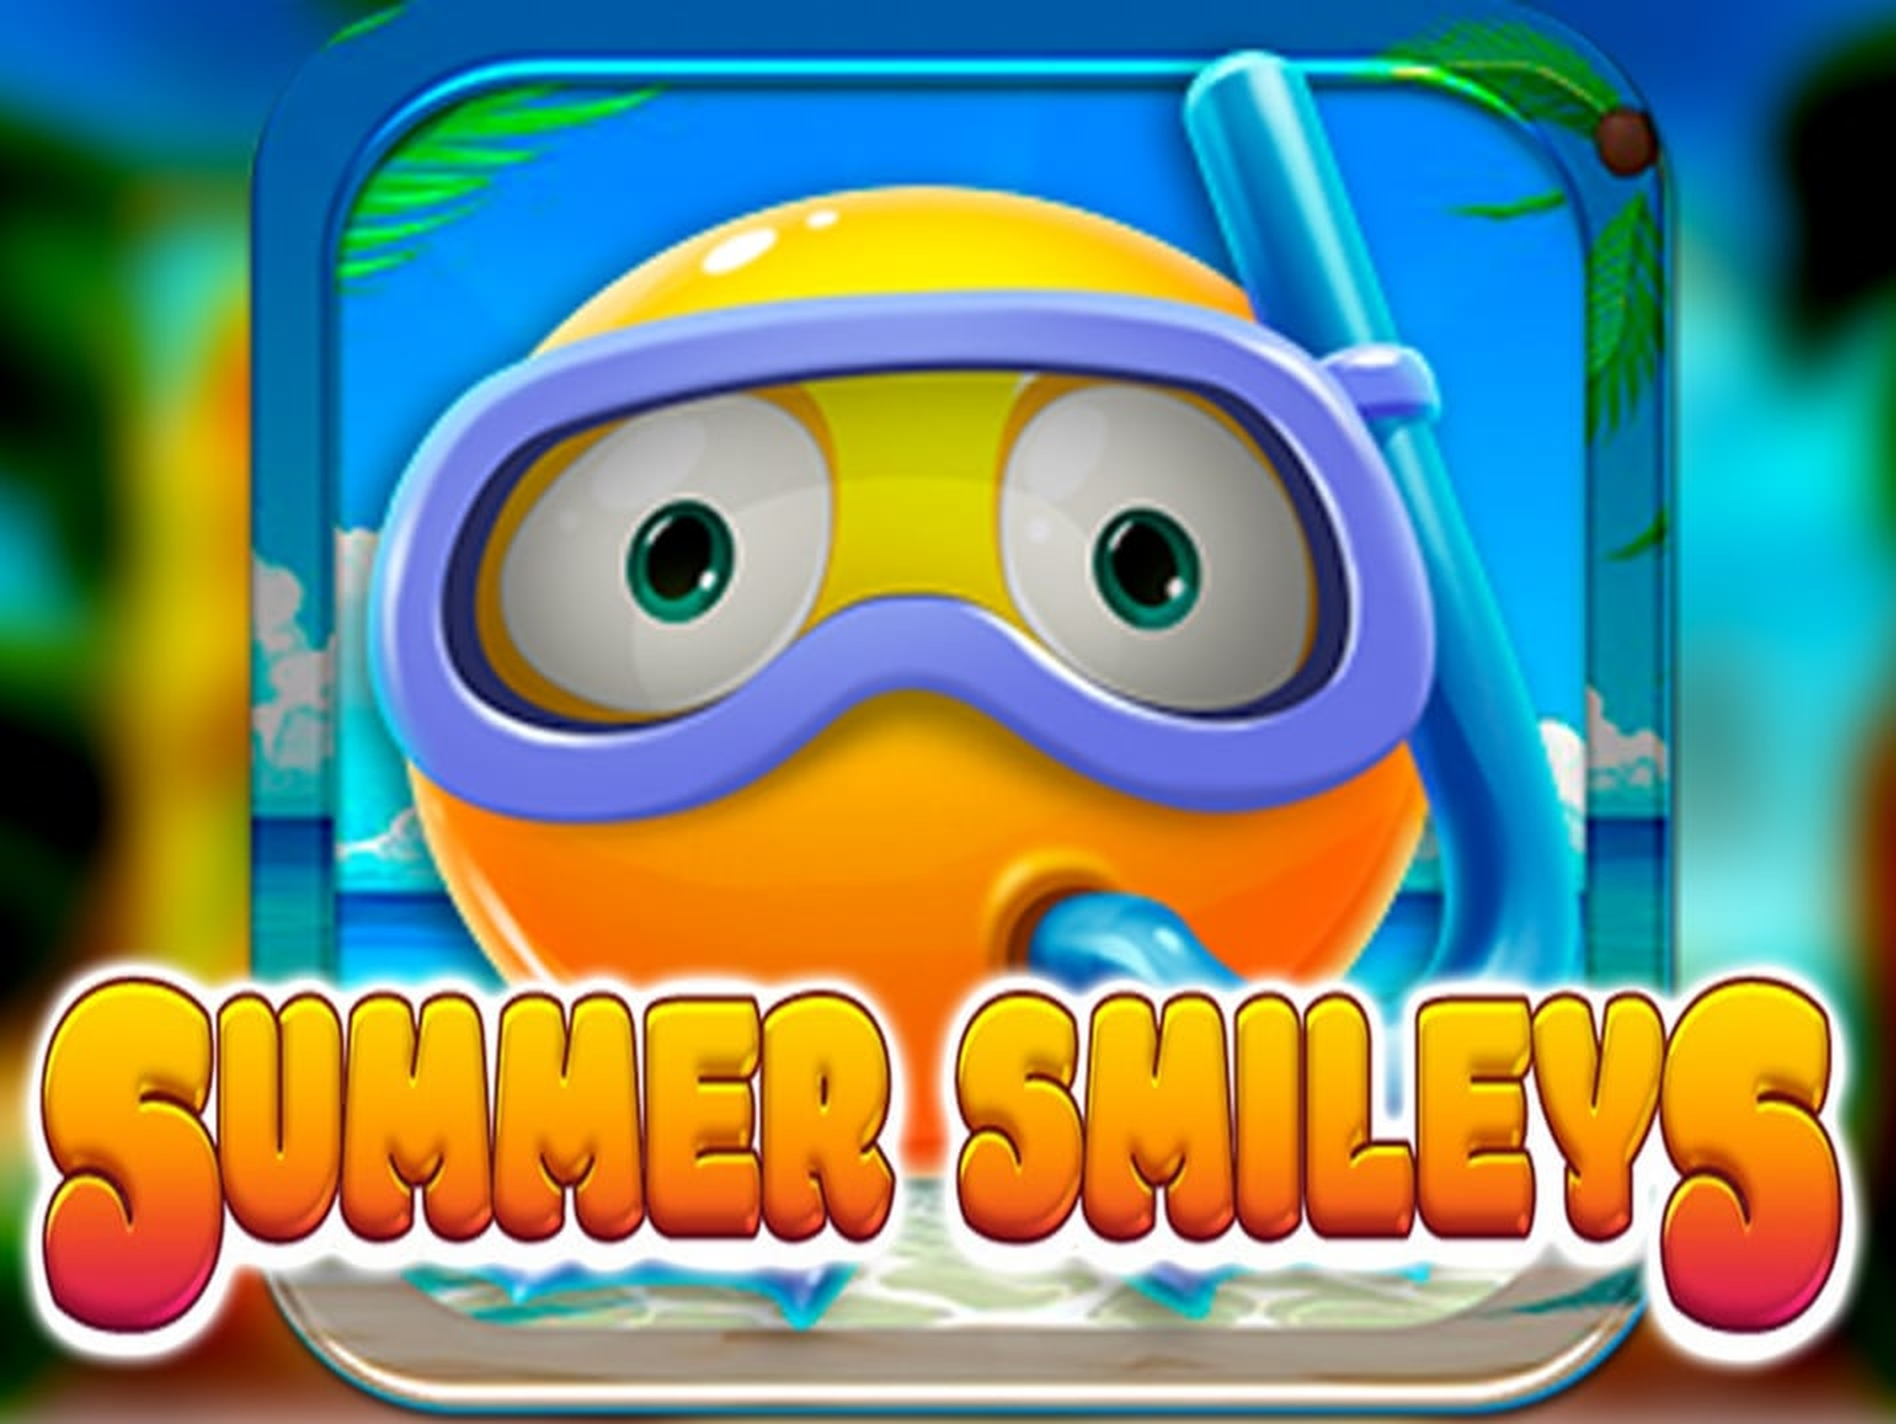 The Summer Smileys Online Slot Demo Game by Mobilots